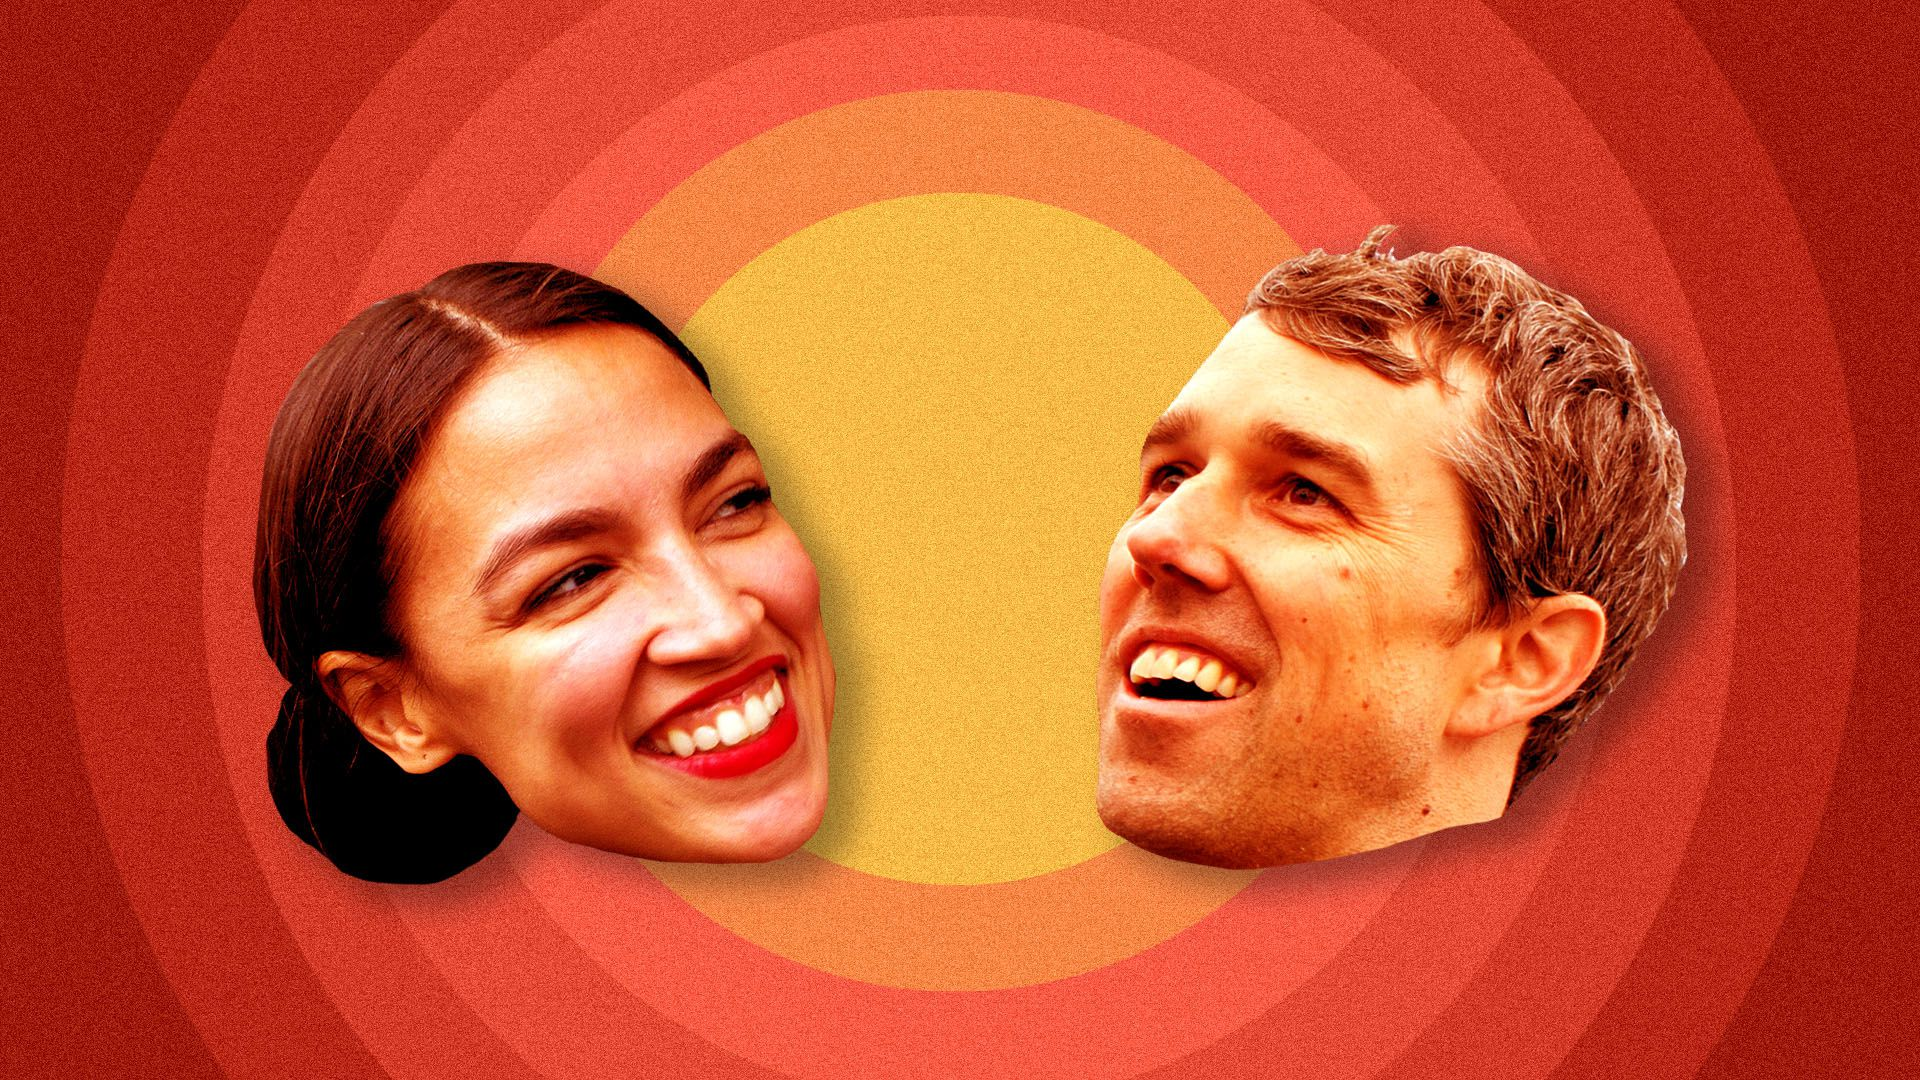 Illustration of Alexandria Ocasio-Cortez and Beto O'Rourke